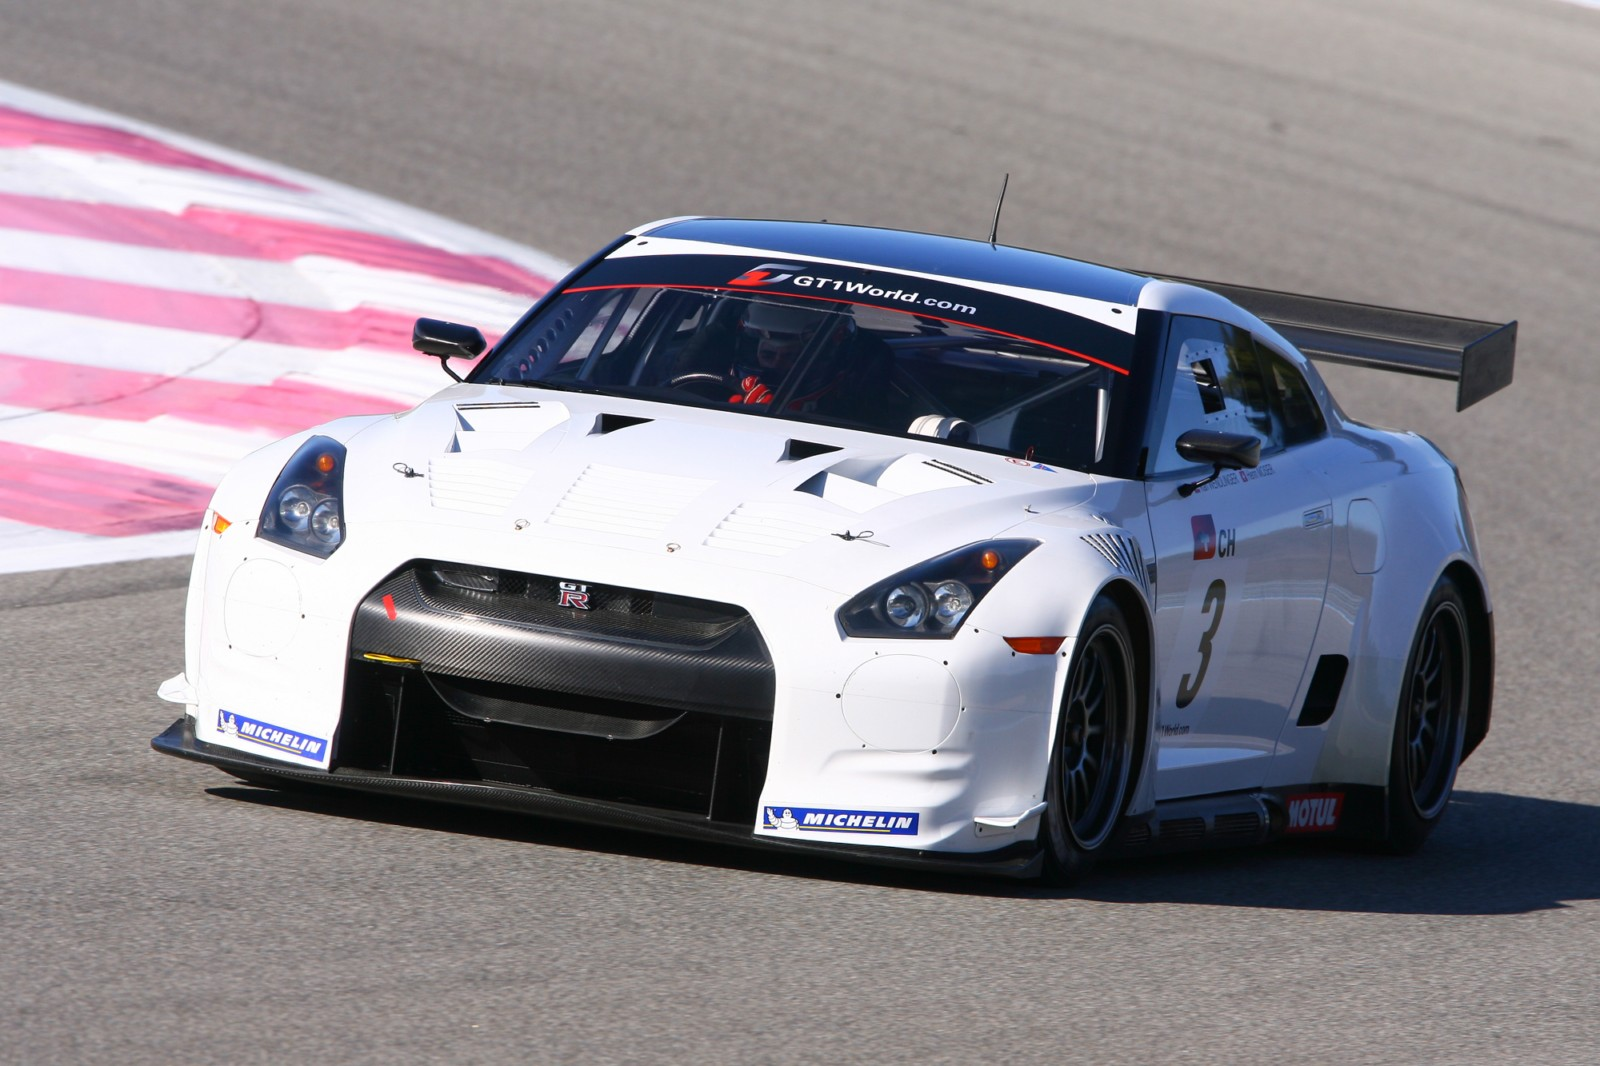 Nissan GT-R GT1 Race Cars Unveiled In Paris